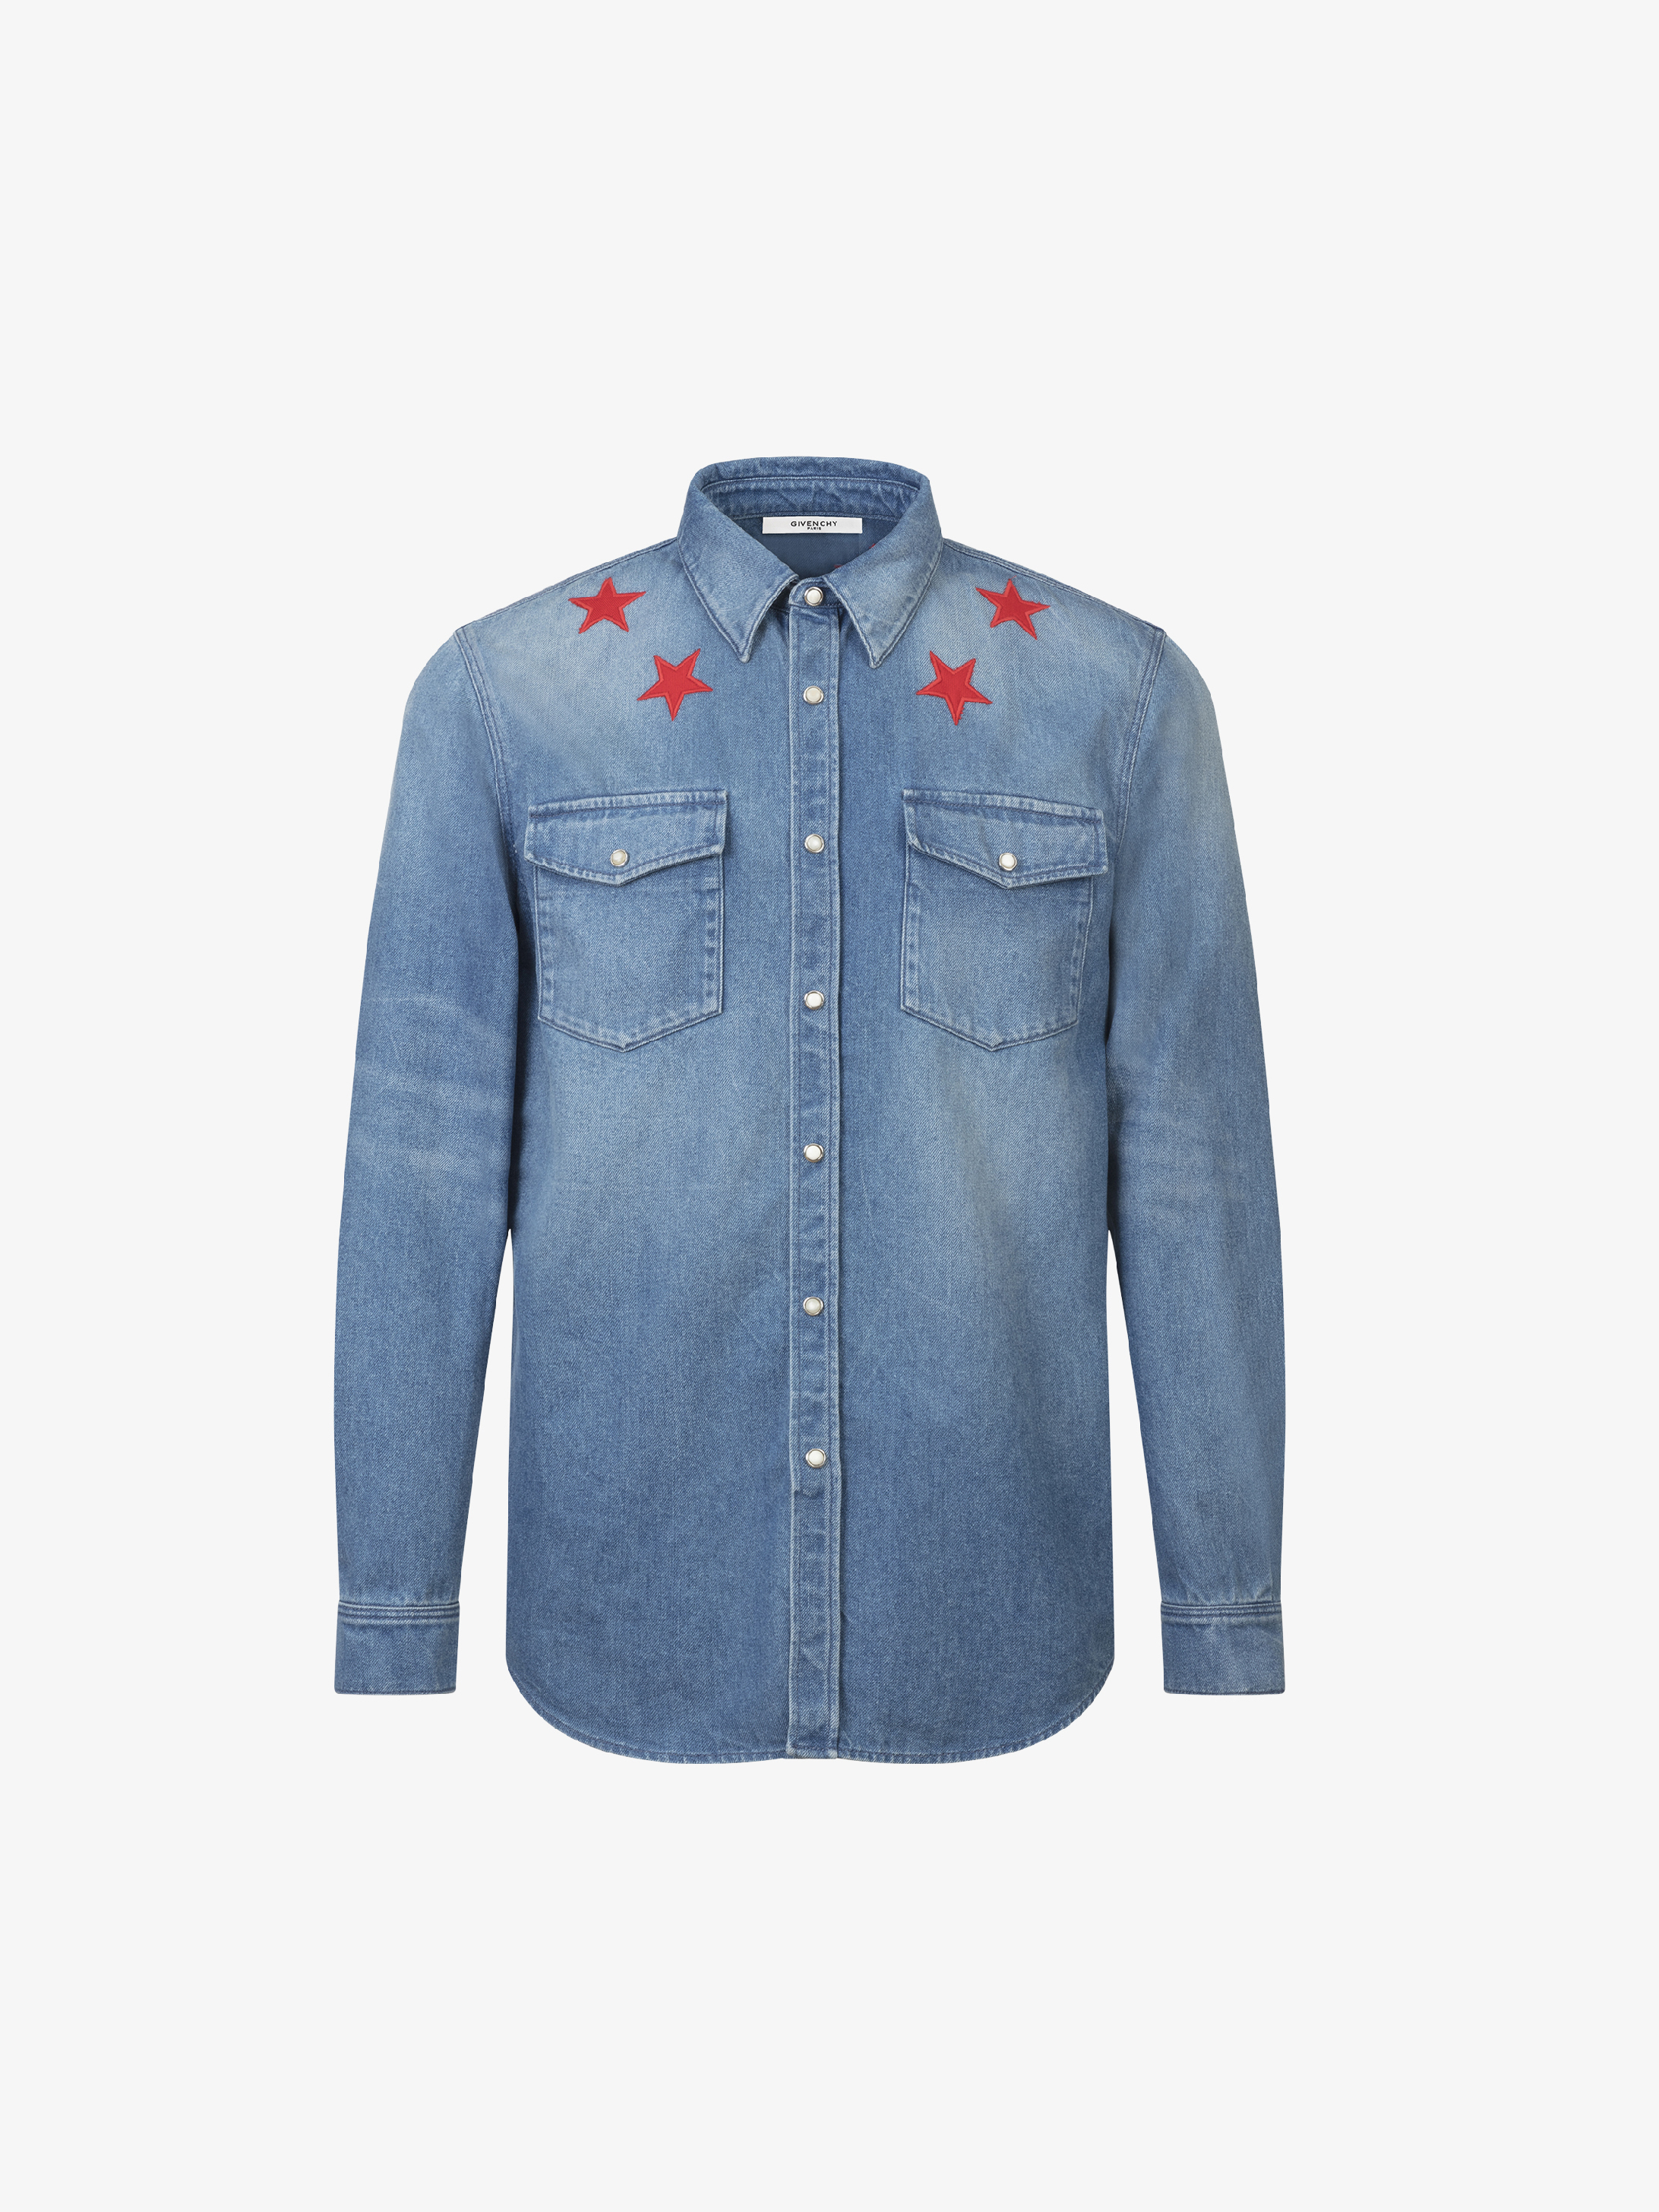 Stars shirt in stoned wash denim